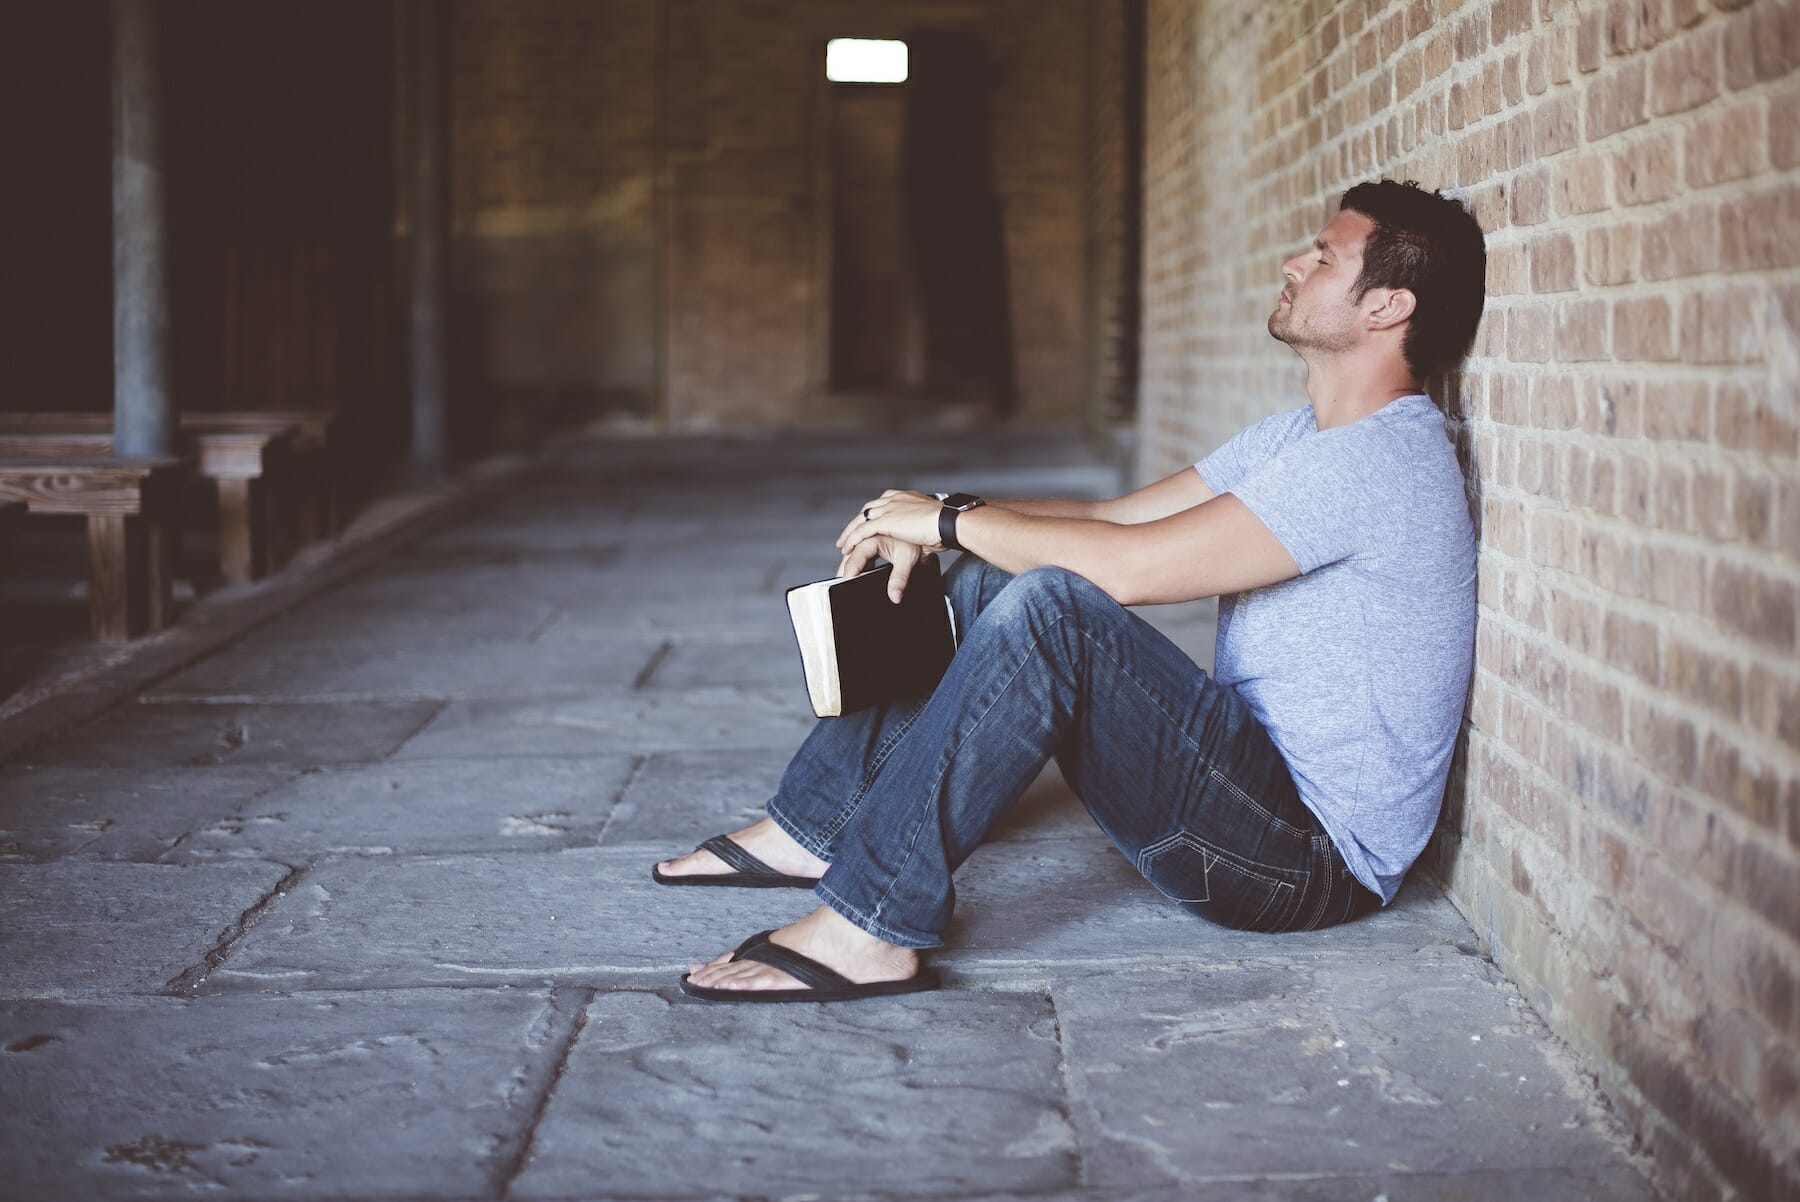 Man holding book frustrated against wall.